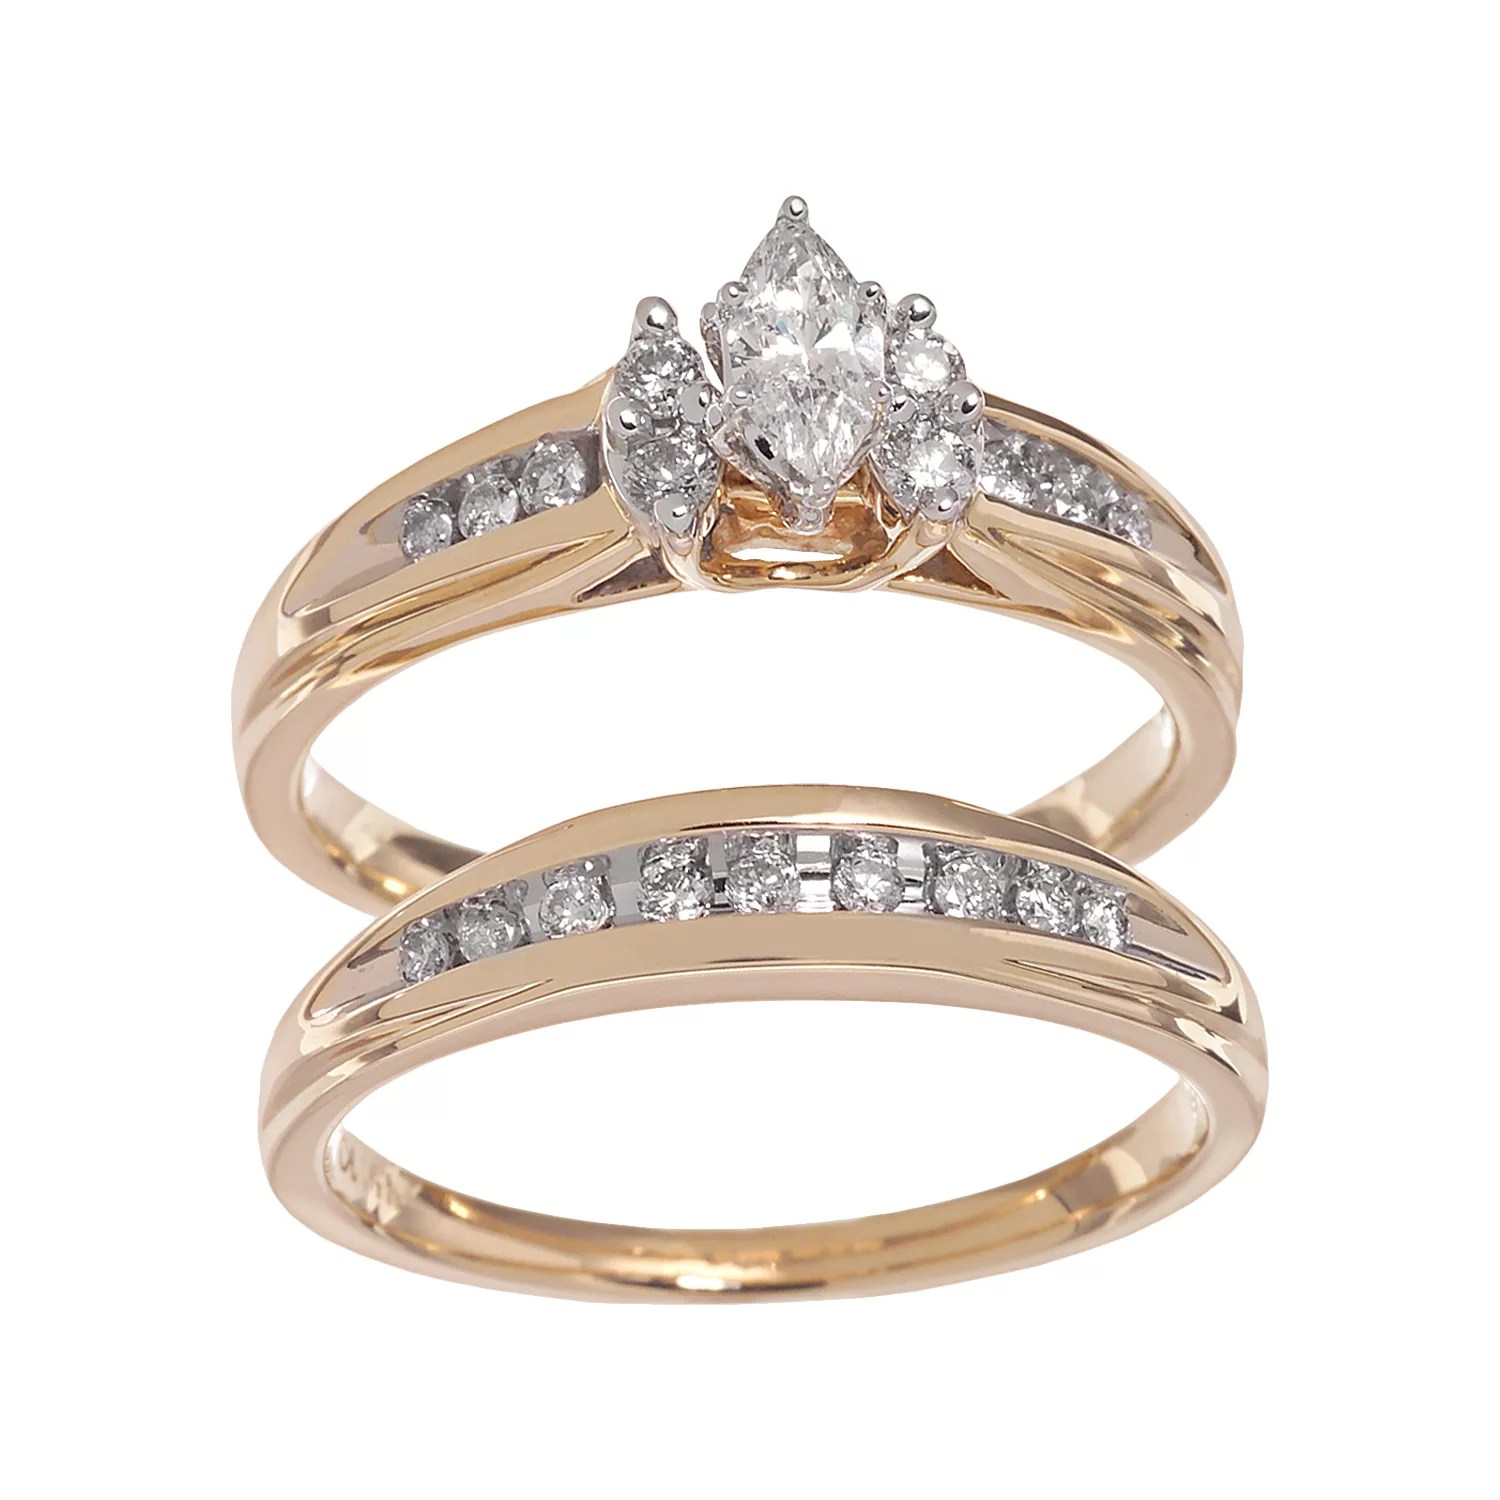 cherish always marquise cut diamond engagement ring set in 14k gold 12 ct tw kohl's wedding rings Cherish Always Marquise Cut Diamond Engagement Ring Set in 14k Gold 1 2 ct T W